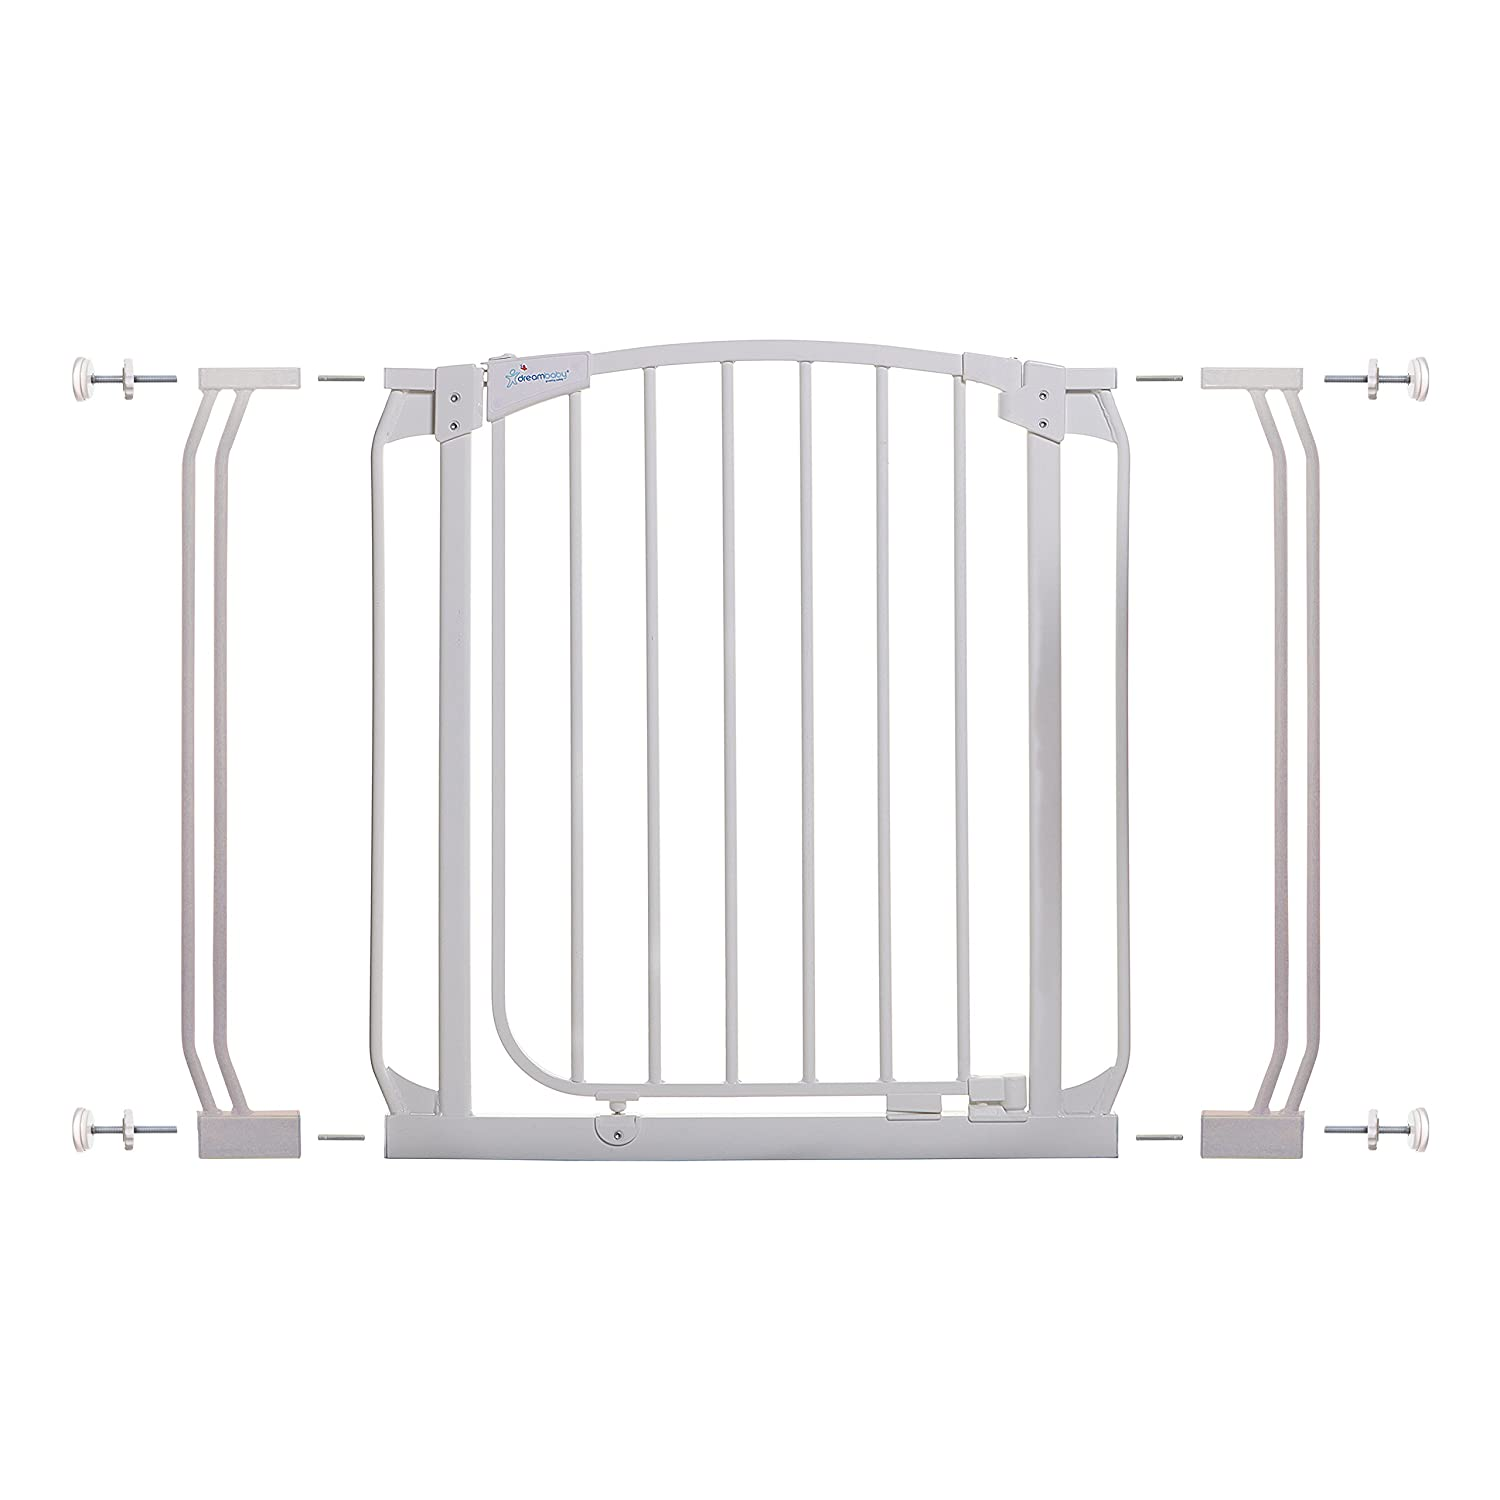 B000EIGJQ2 Dreambaby Chelsea Auto Close Security Gate in White with Extensions 71DViyMl%2BuL